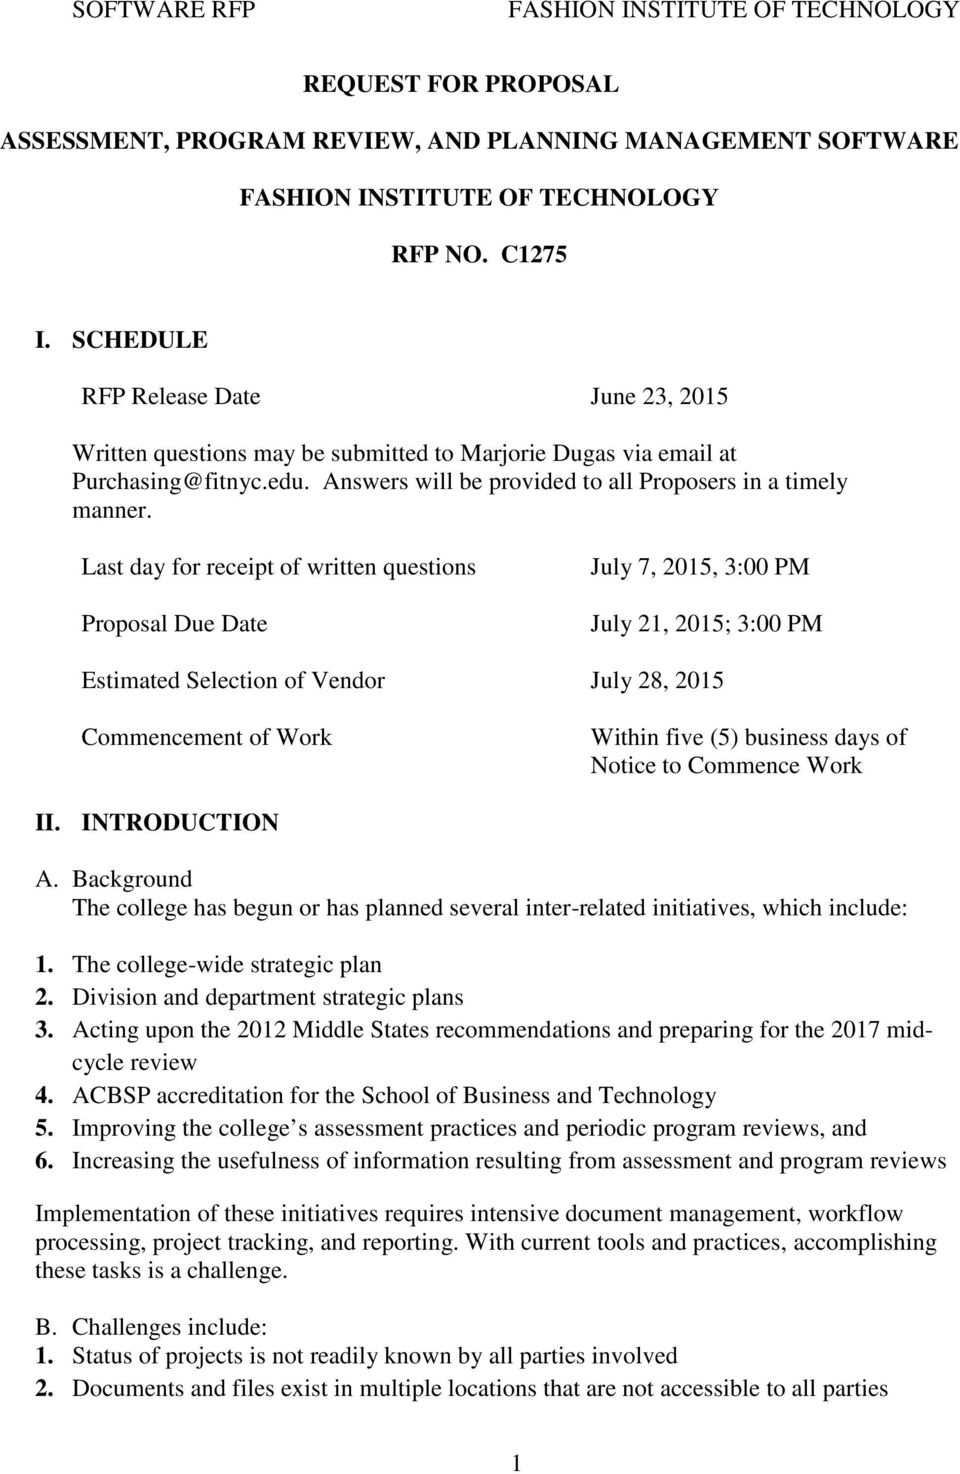 Last day for receipt of written questions Proposal Due Date July 7, 2015, 3:00 PM July 21, 2015; 3:00 PM Estimated Selection of Vendor July 28, 2015 Commencement of Work Within five (5) business days